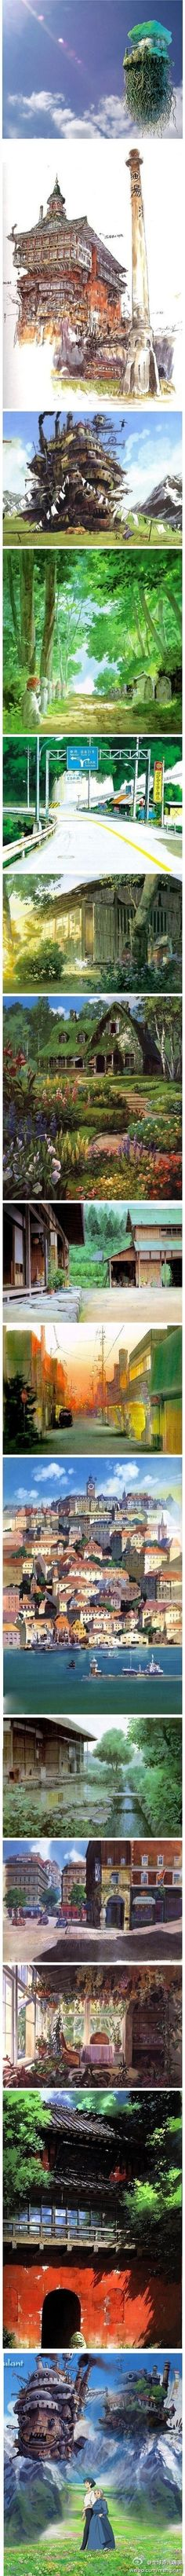 Studio Ghibli settings